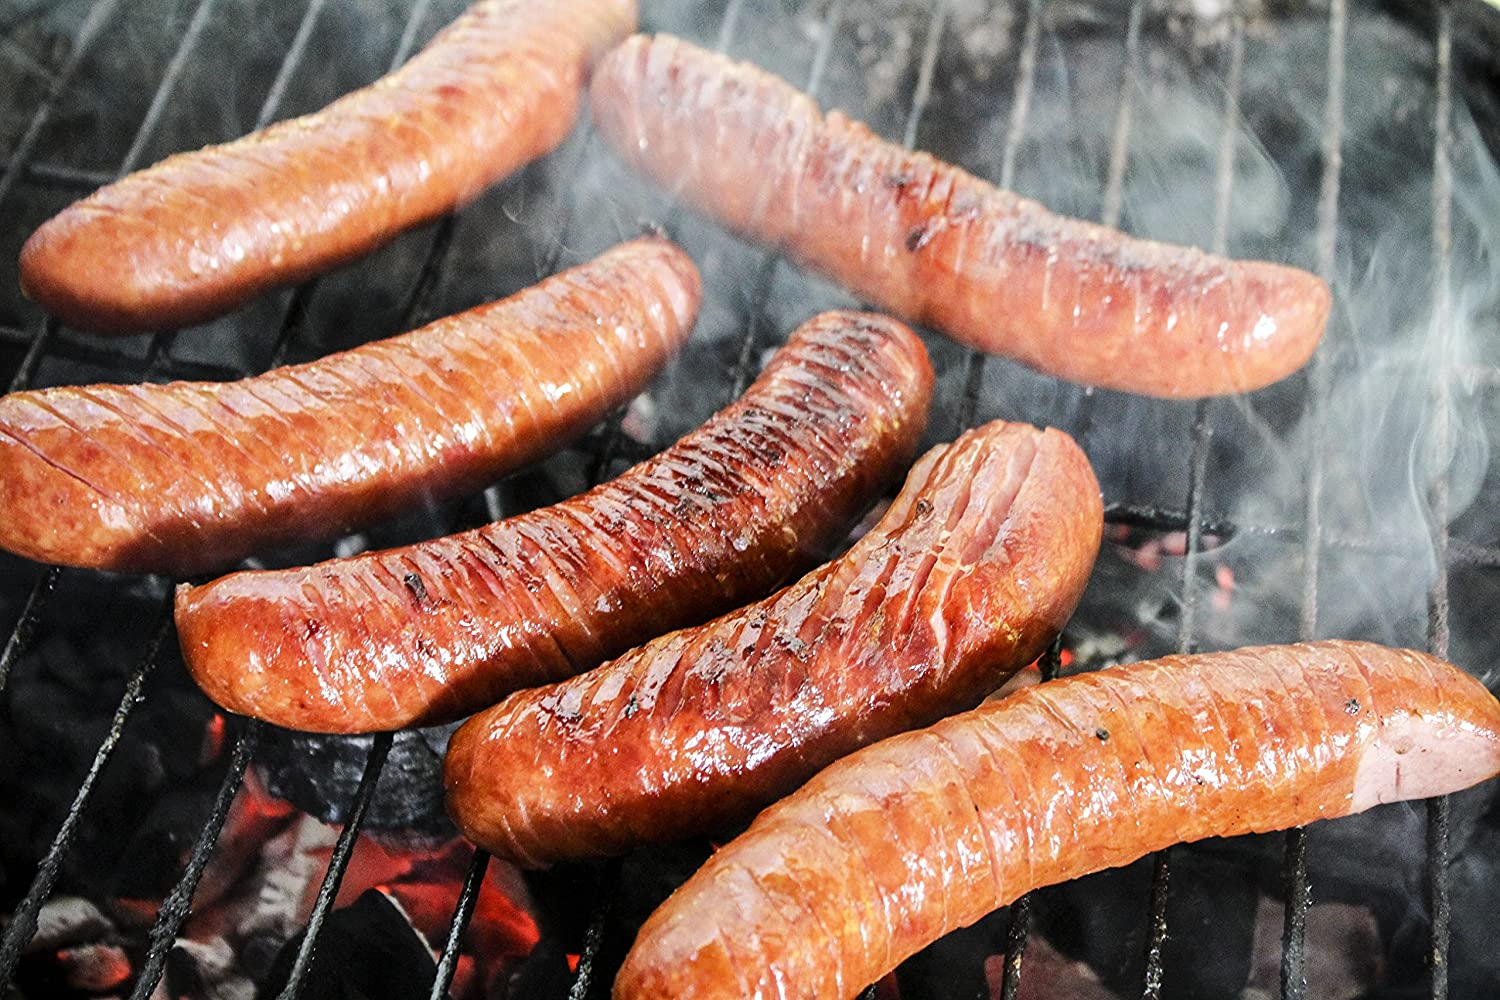 Preparing the sausages for the pellet smoker